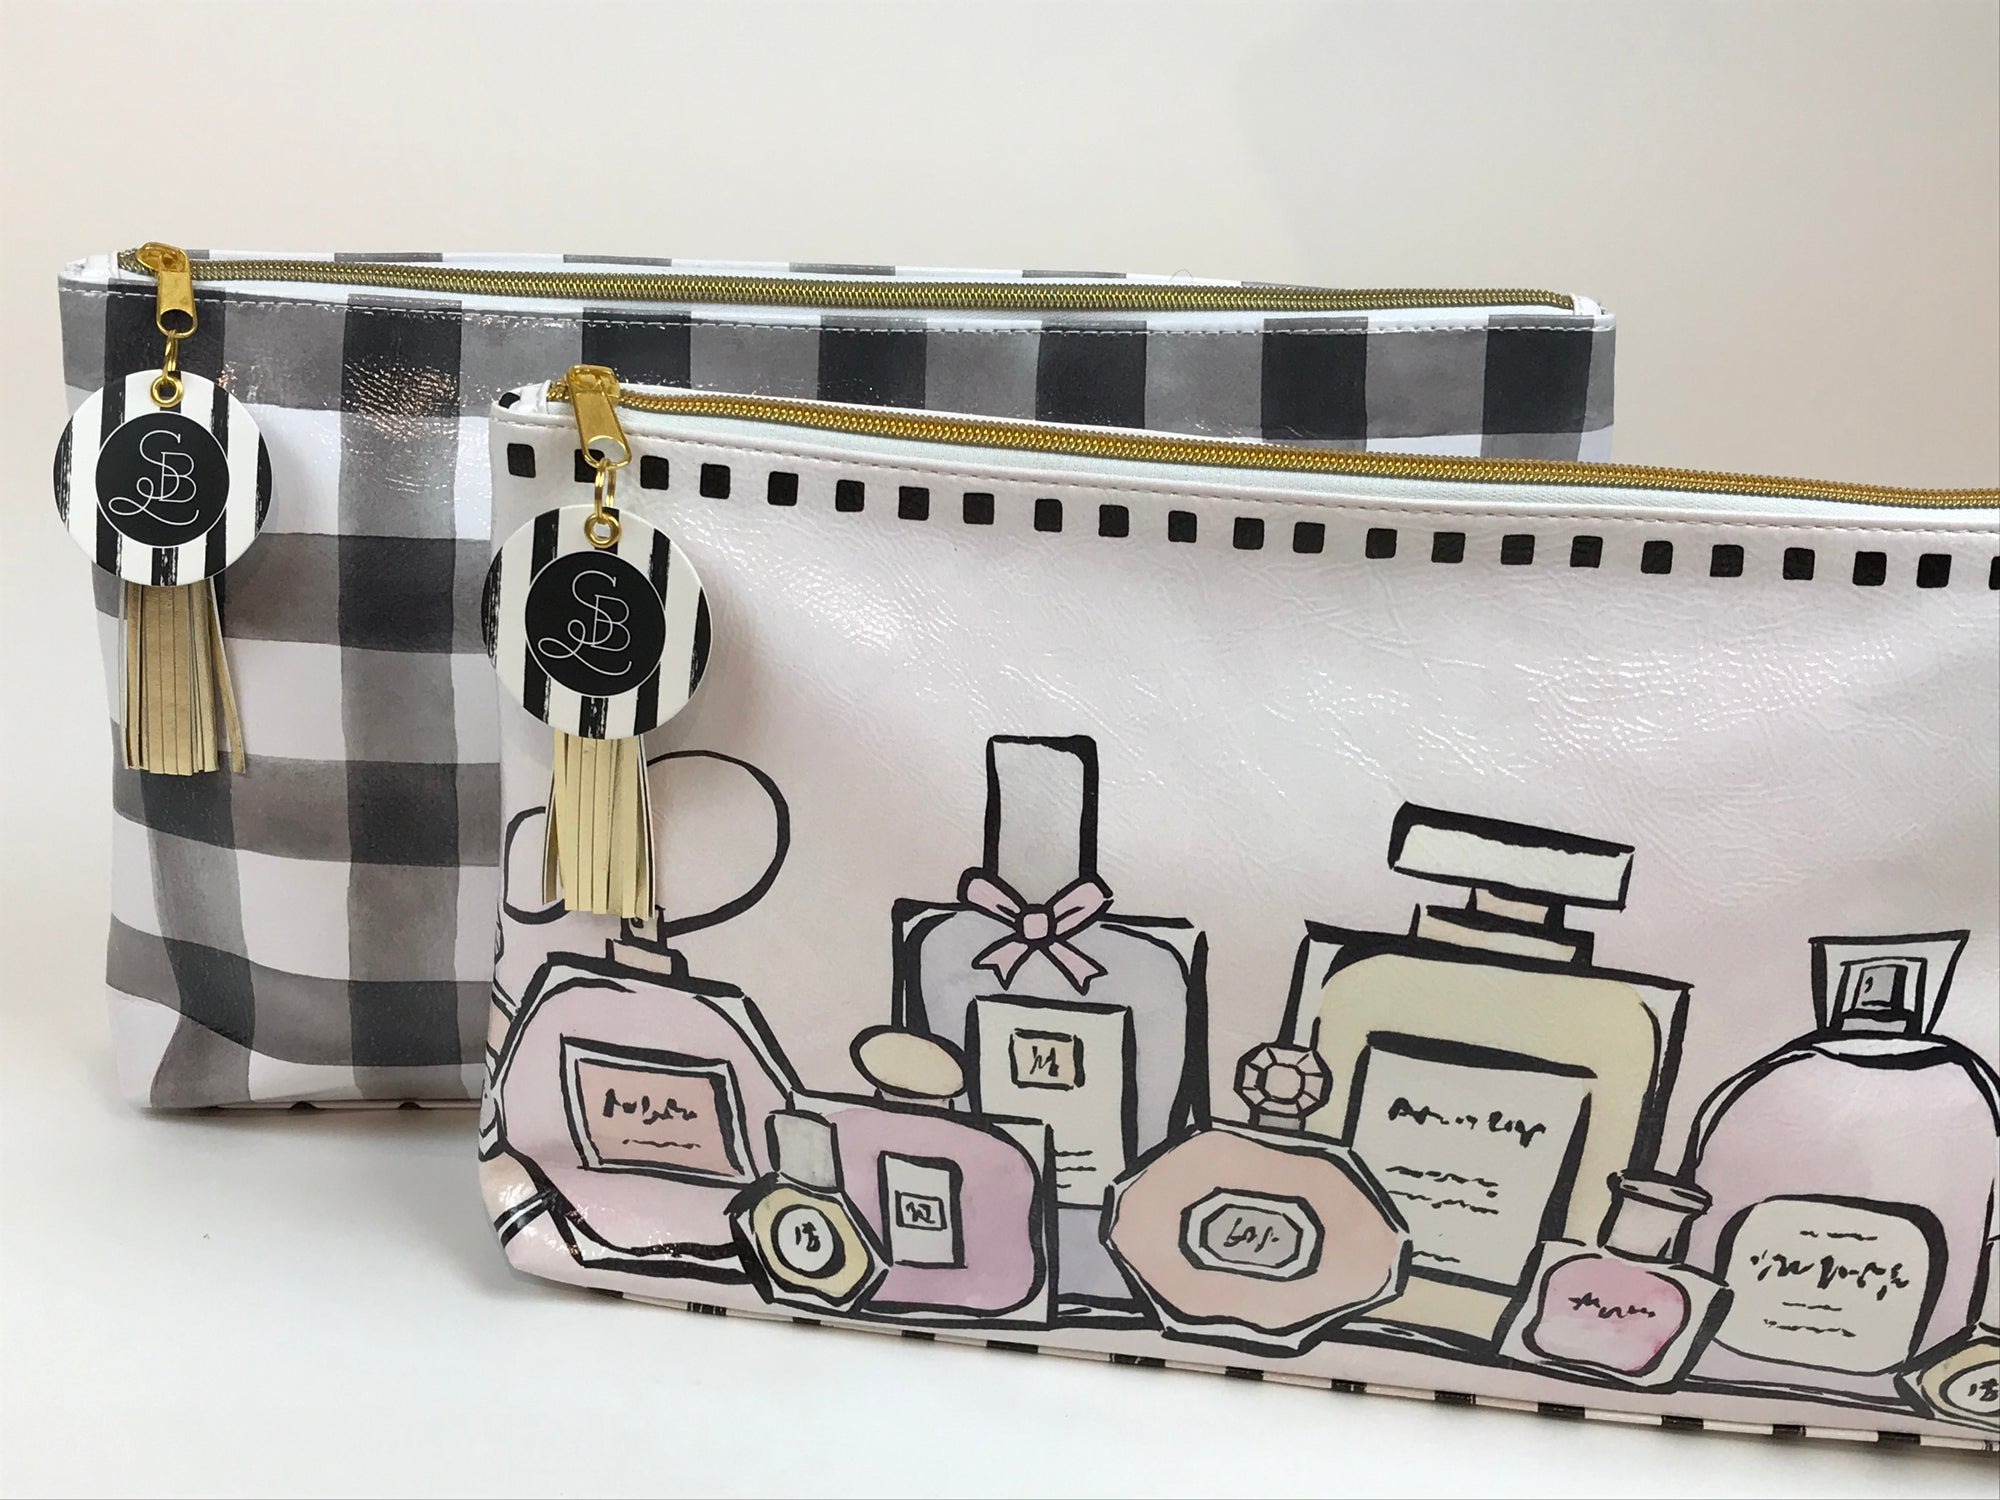 Oil cloth designer bags